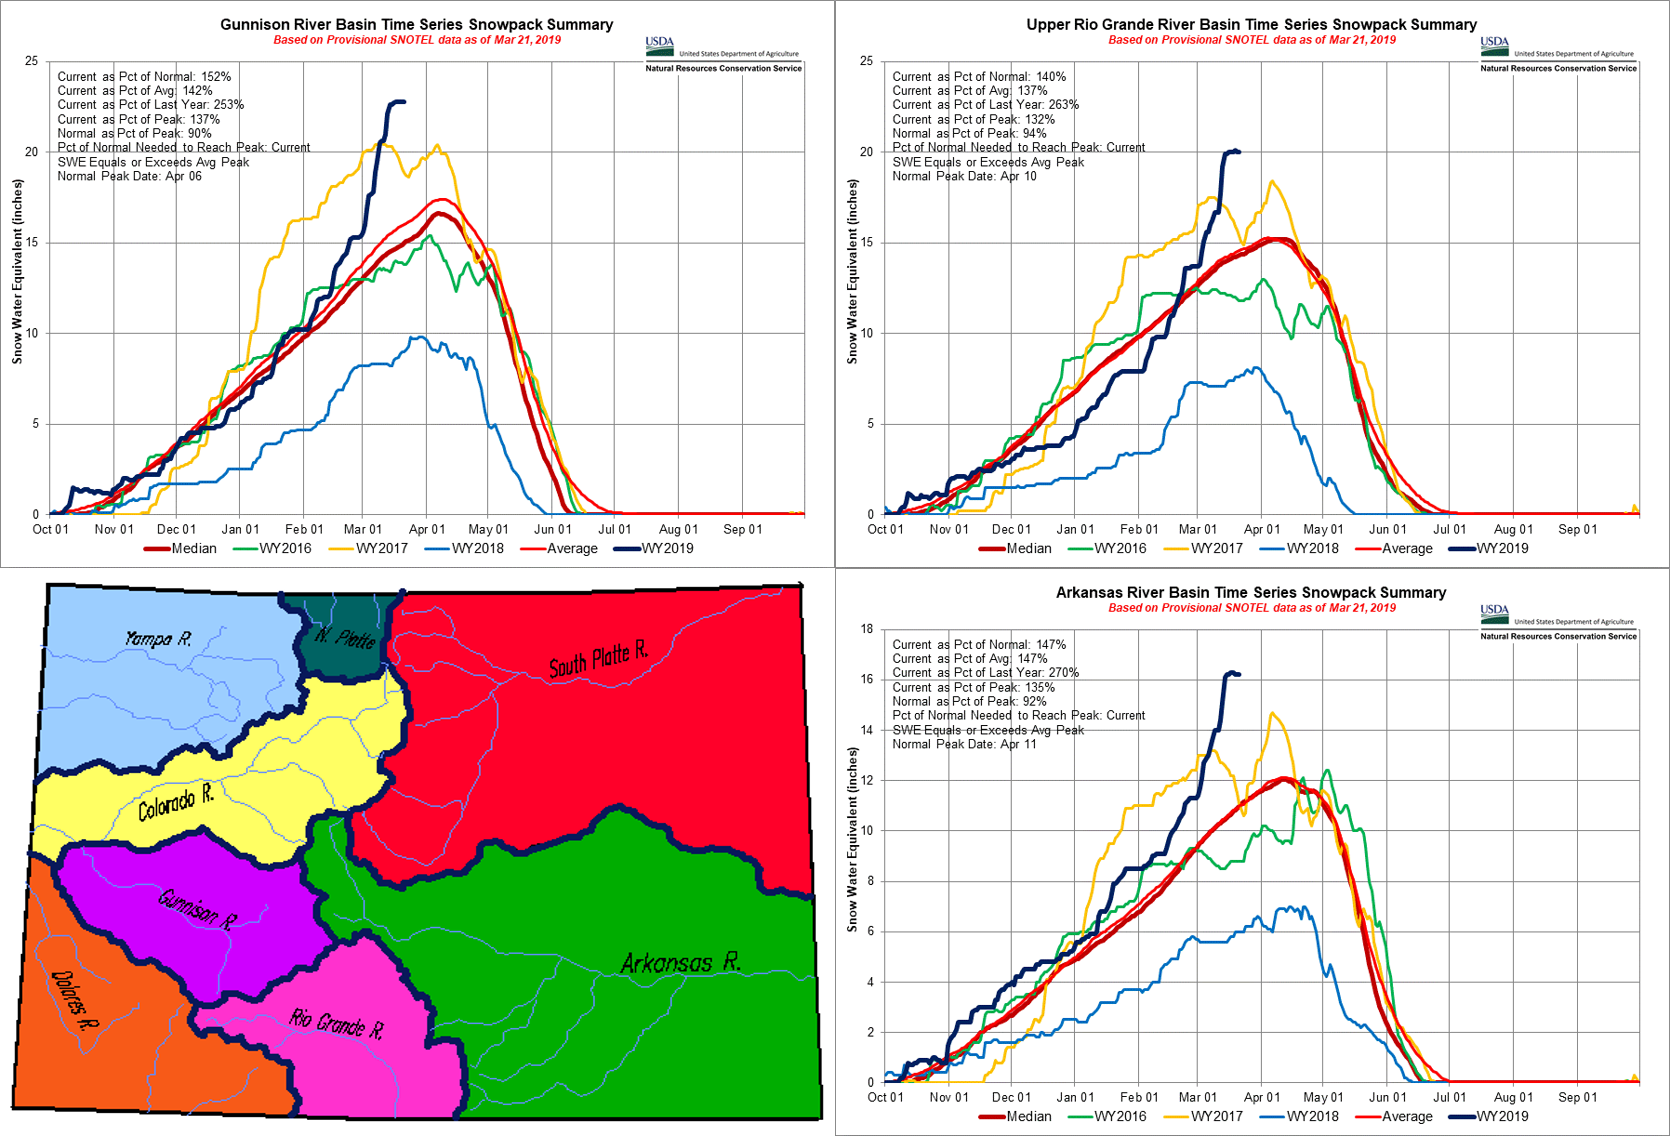 Colorado Snowpack | Satellite Liaison Blog on map of palm, map of pe, map of cdt, map of northern california and oregon, map of pen, map of pa, map of san, map of delaware, map of pcc, map of md, map of asia, map of ca, map of ai, map of ms, map of pcb, map of sun, map of msp, map of nec, map of pei, map of pch,